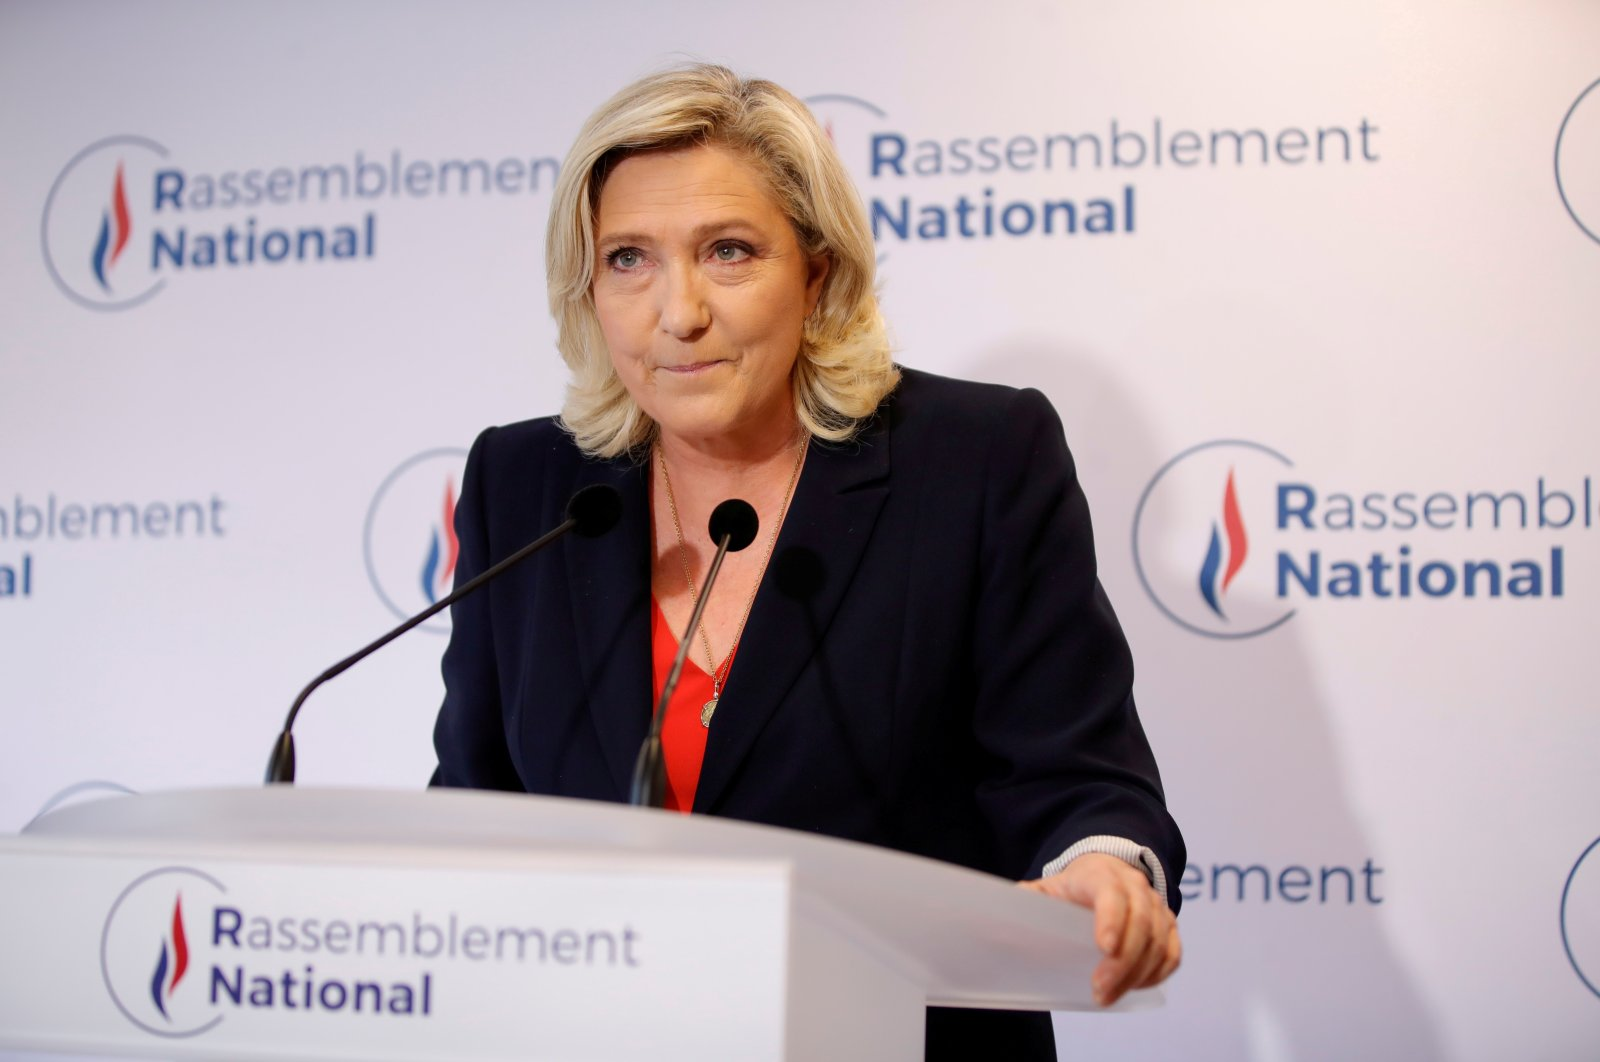 French far-right National Rally (Rassemblement National) party leader Marine Le Pen delivers a speech in reaction to the outcomes of the second round of French regional and departmental elections, in Nanterre, near Paris, France, June 27, 2021. (Reuters File Photo)